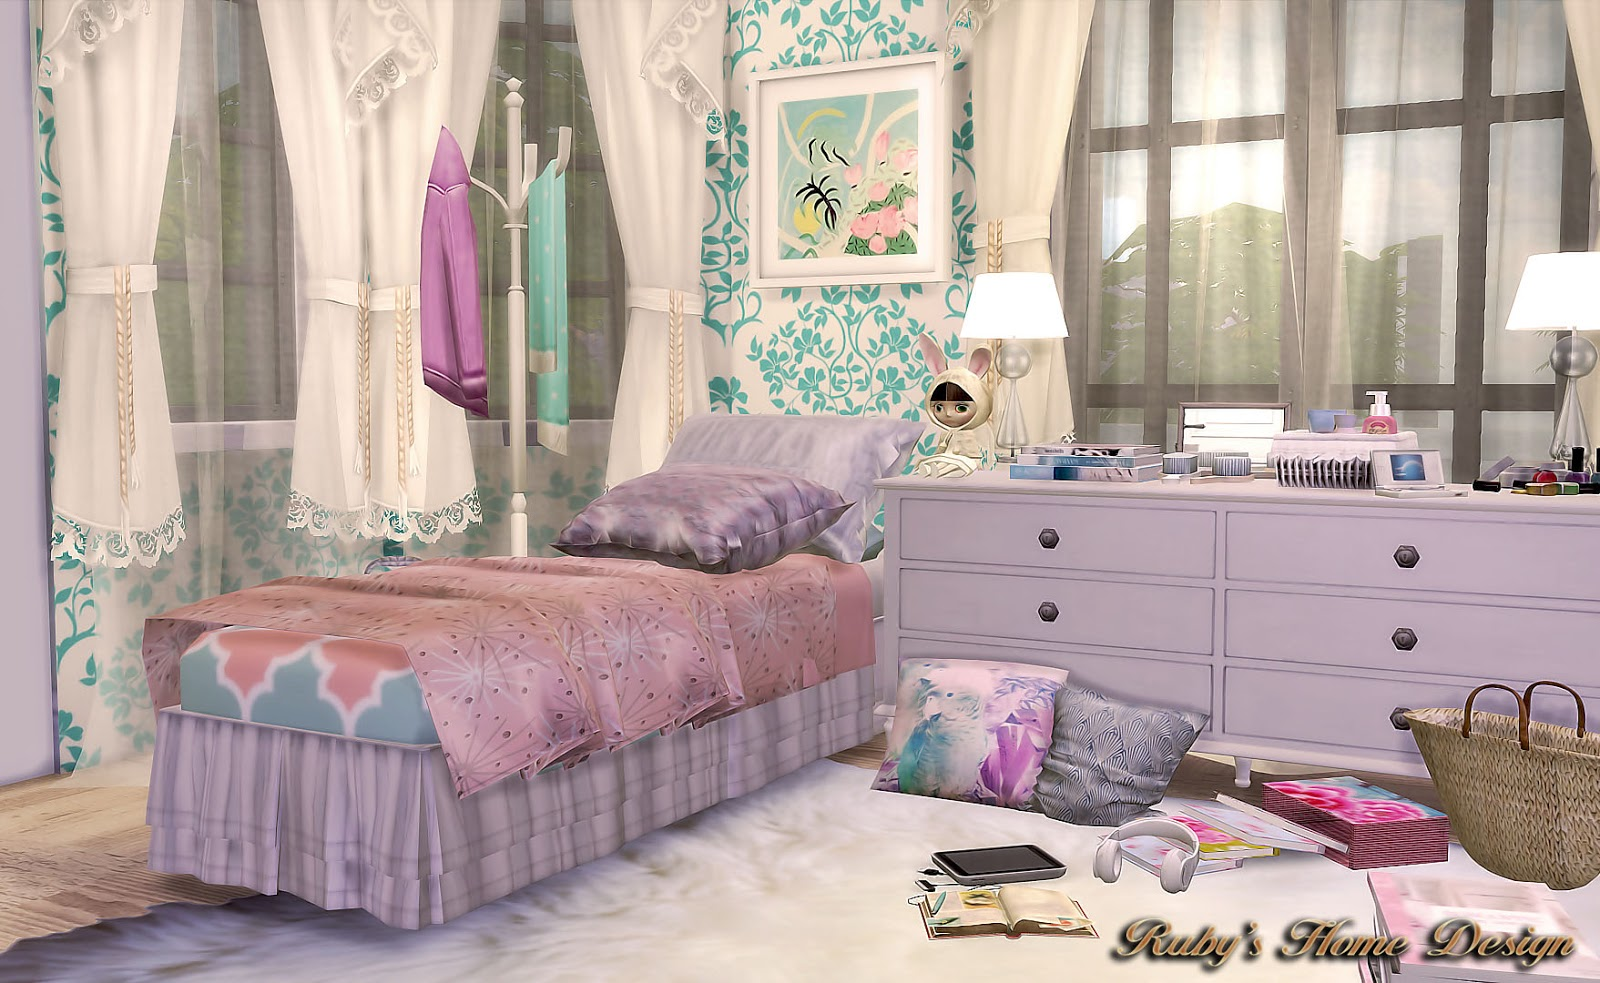 Just a few pictures ruby s home design